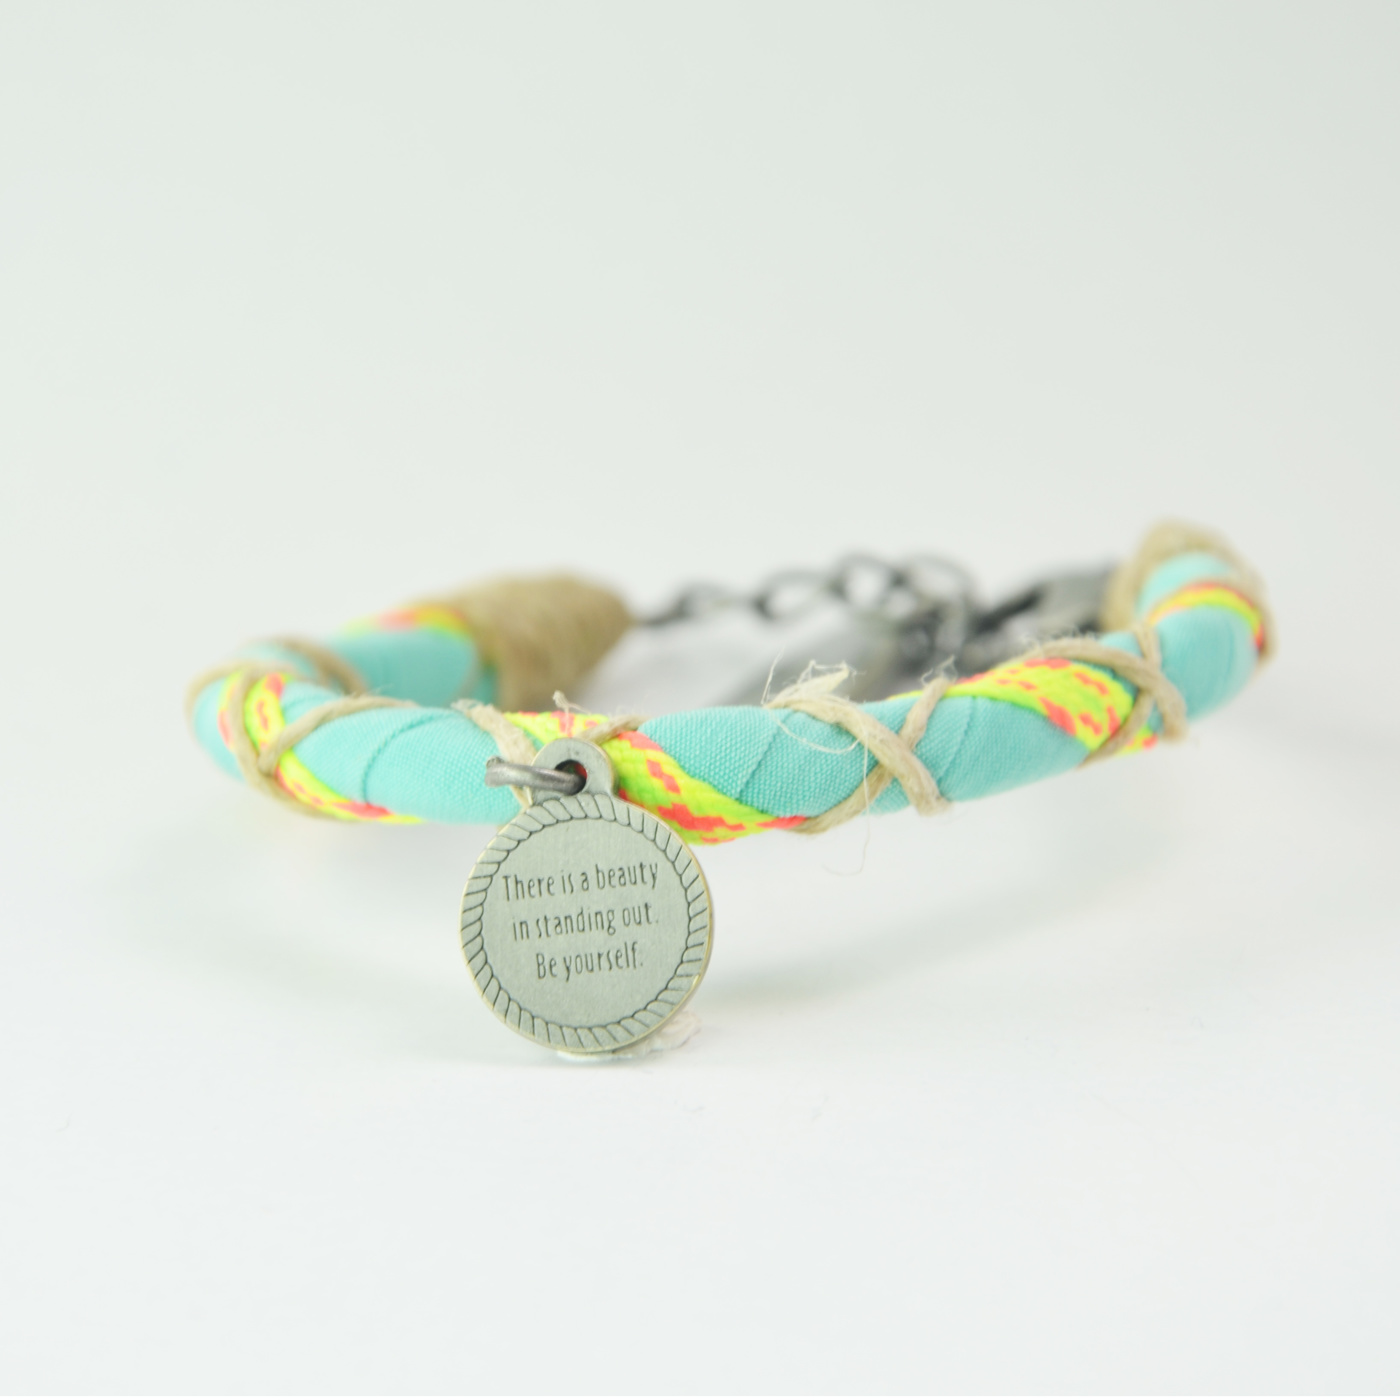 Moost Wanted neon/turquoise